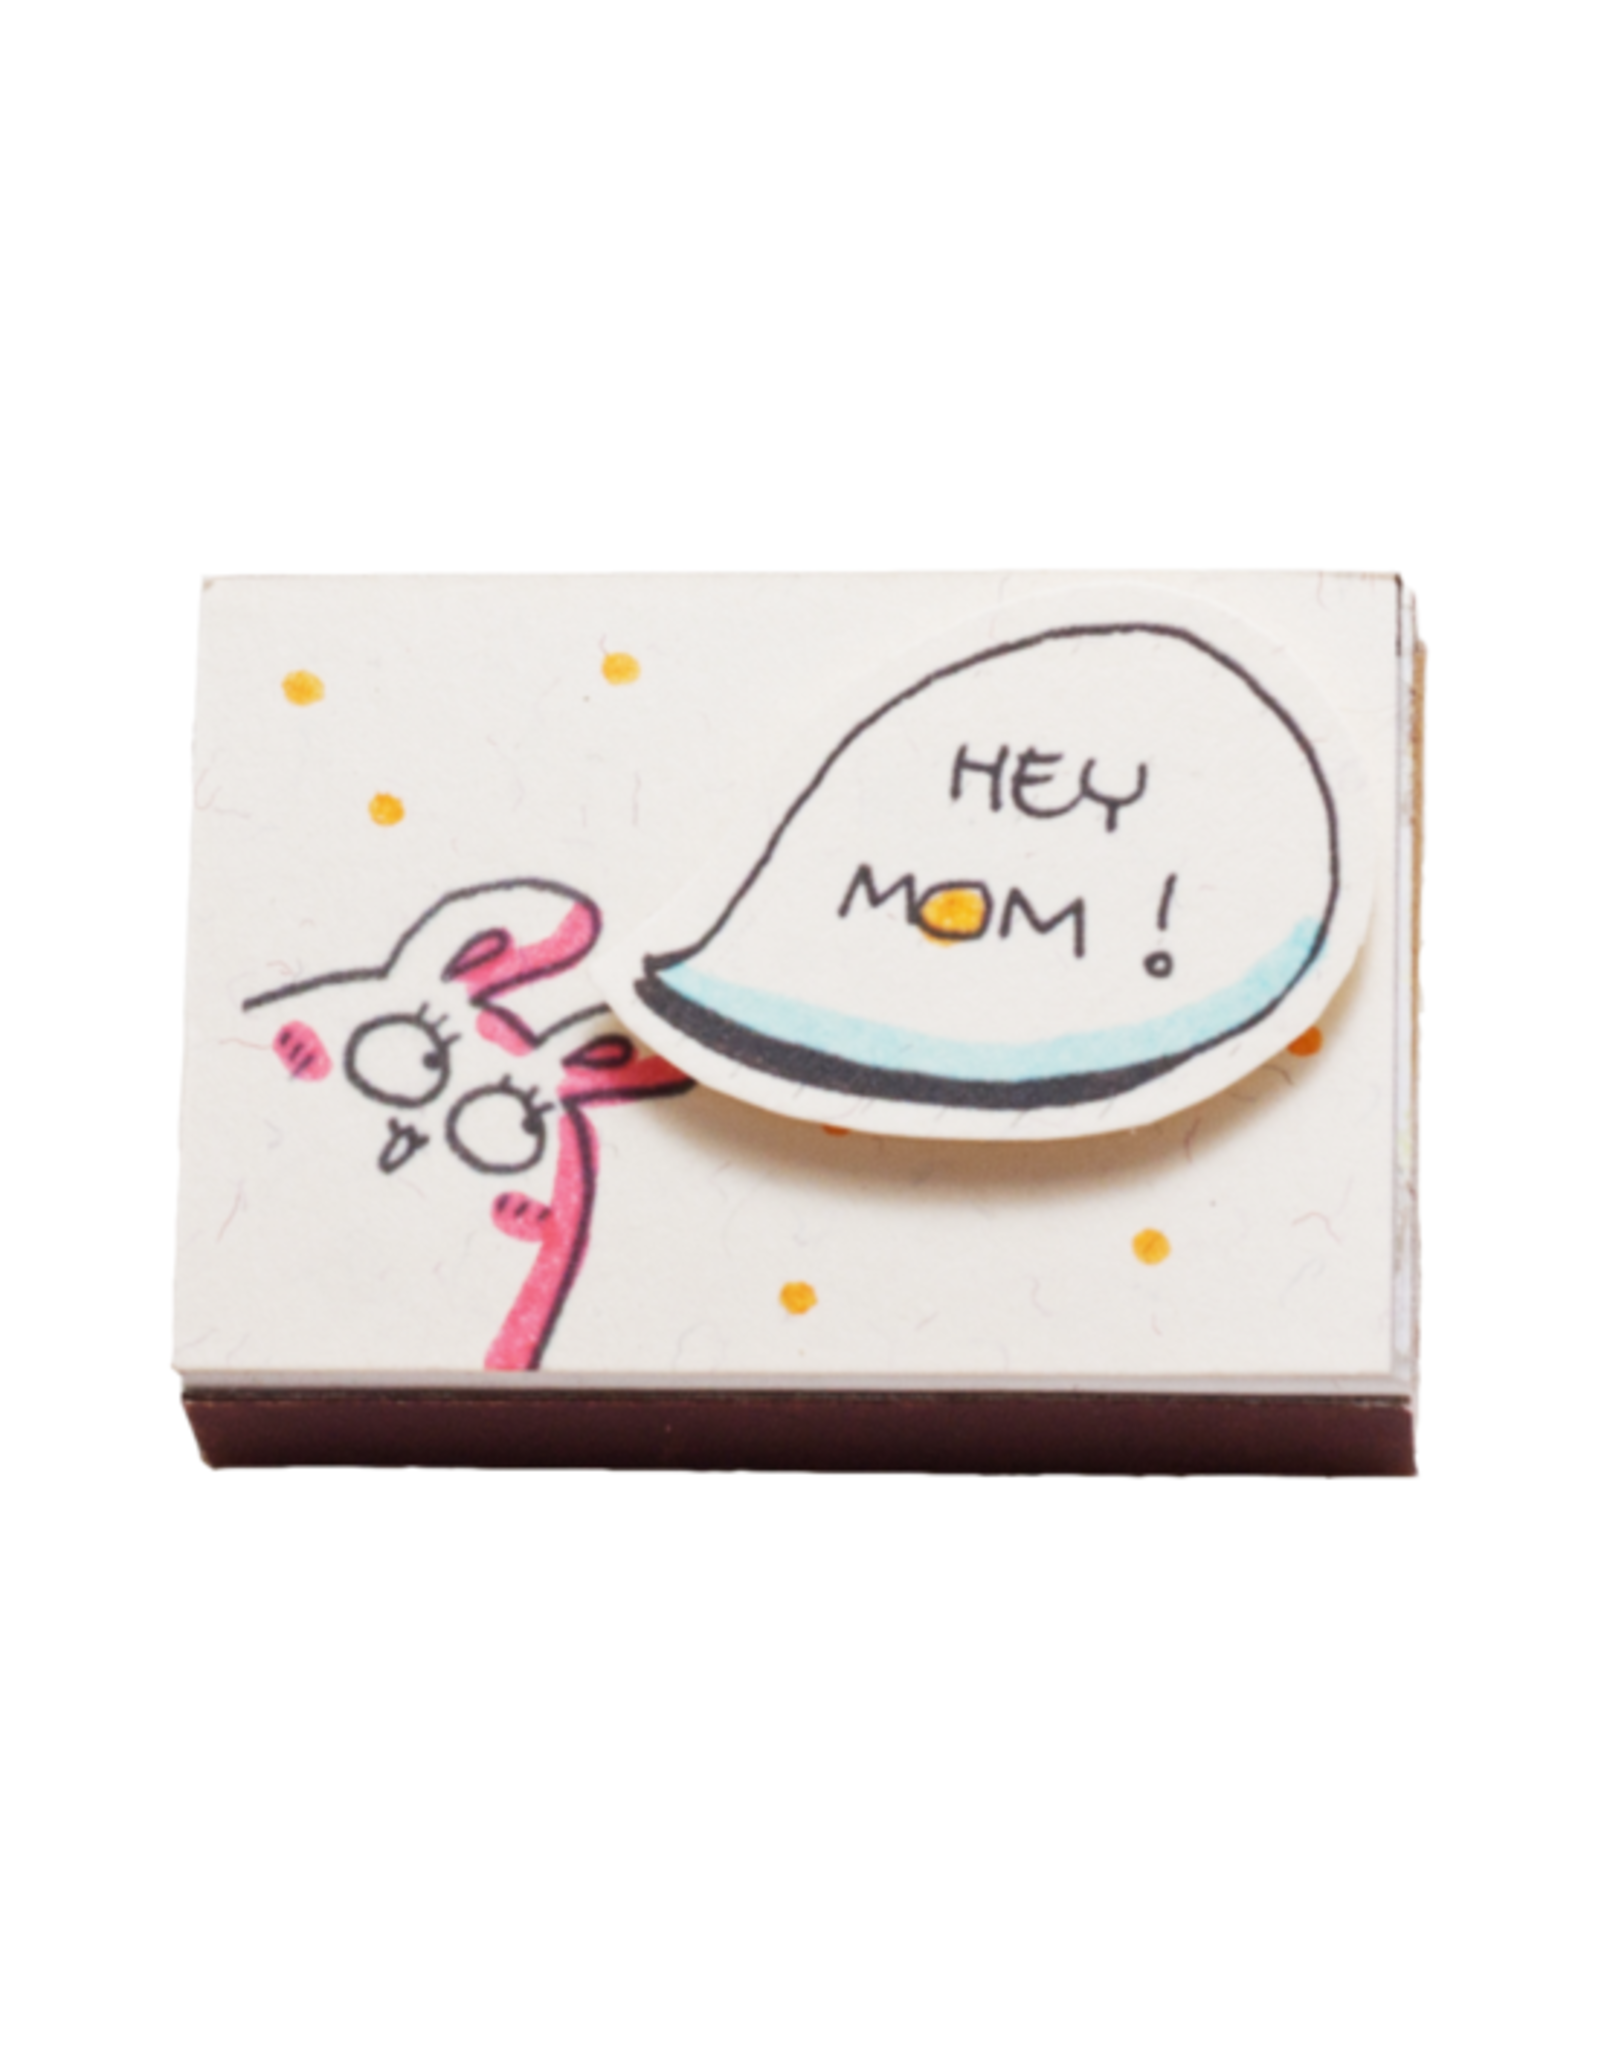 Matchbox Greeting Card - Hey Mom, You're Awesome